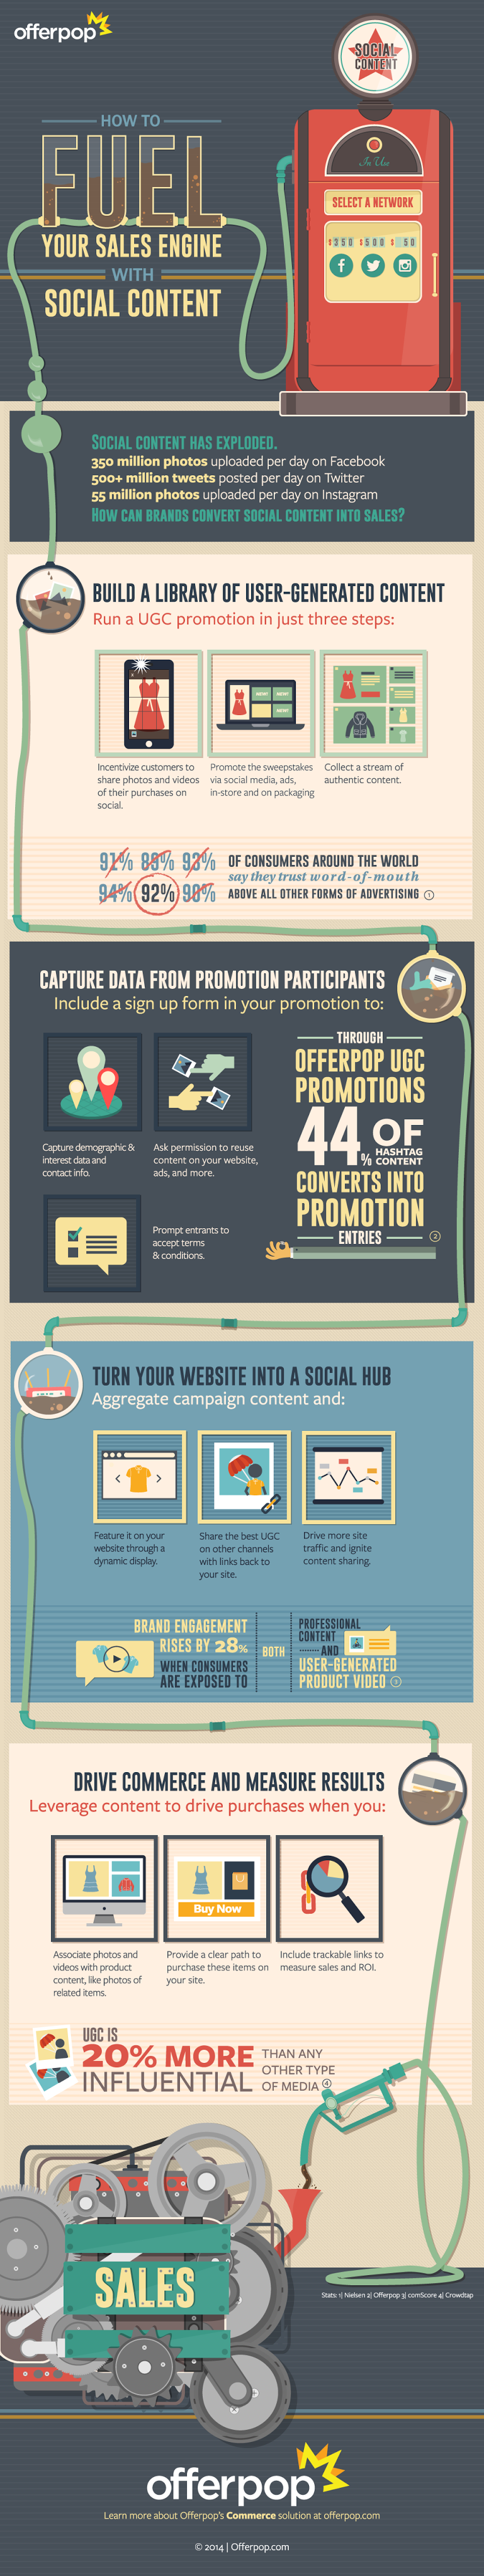 The Strategy for Driving Sales from #SocialMedia Content - #infographic #contentmarketing